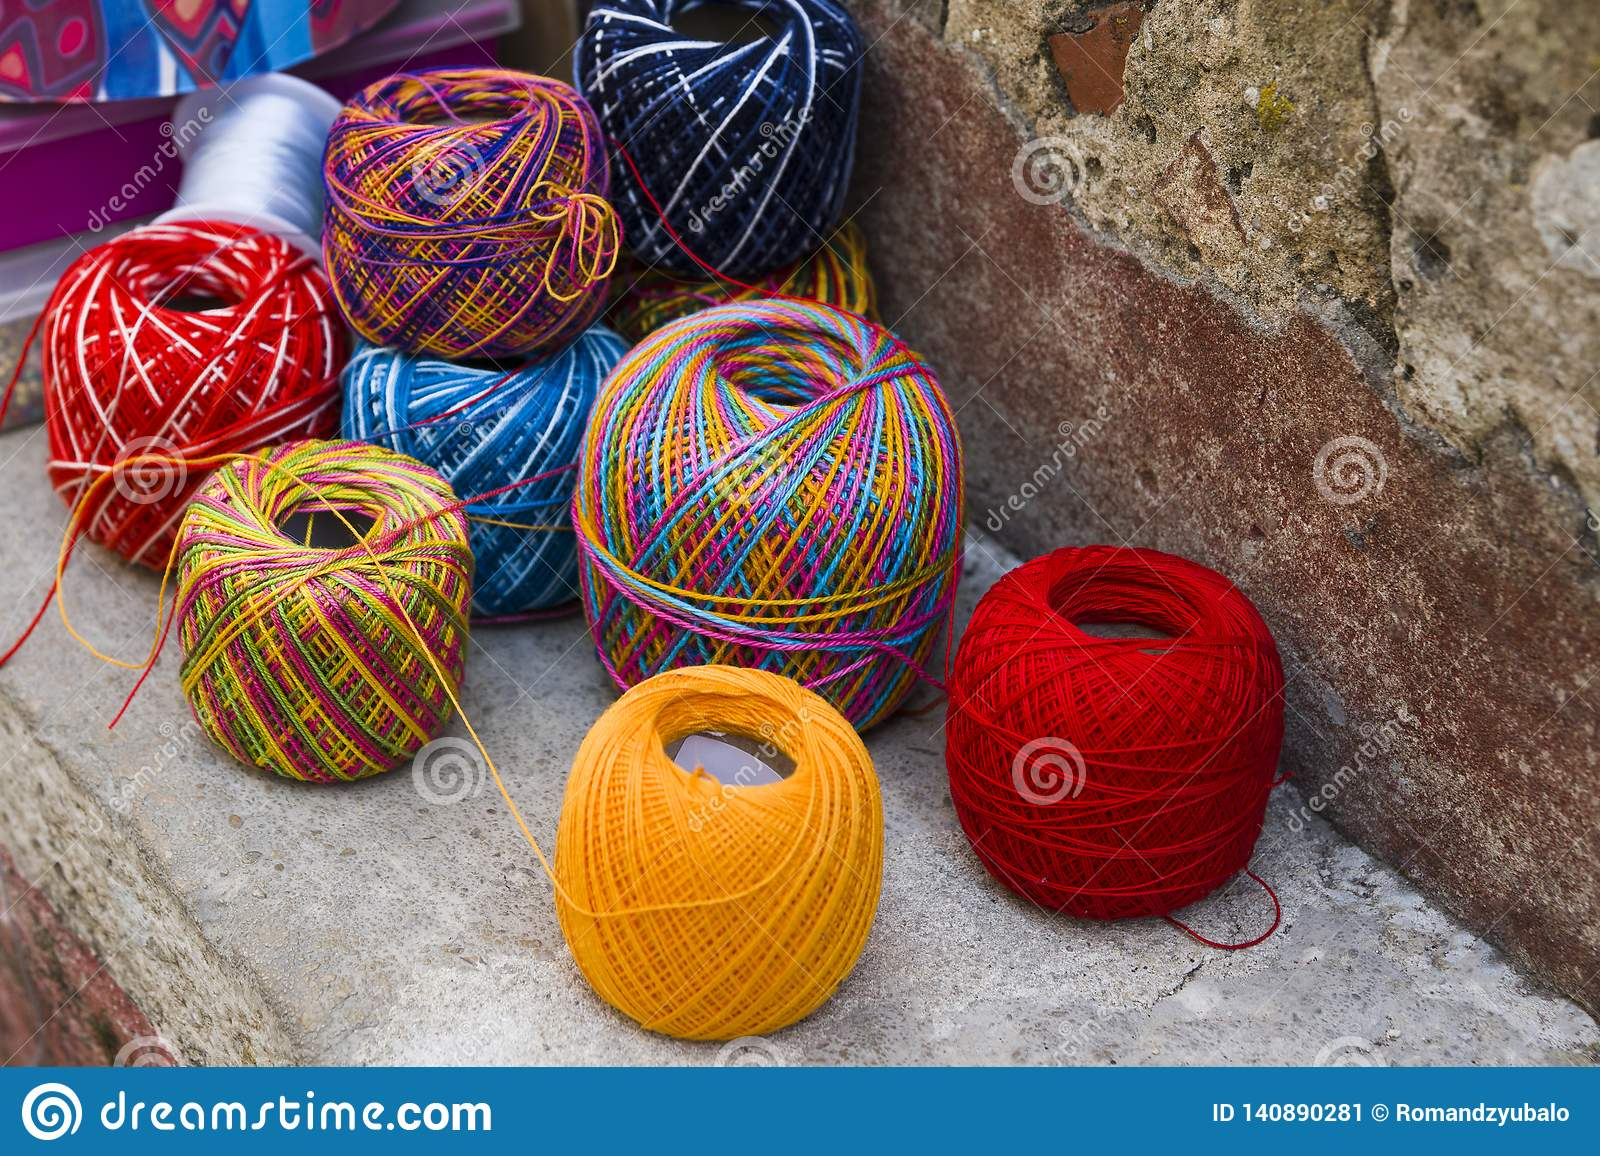 Skeins of bright colored wool lie on the stone border near the wall. In the background are boxes and a coil with a blue ribbon